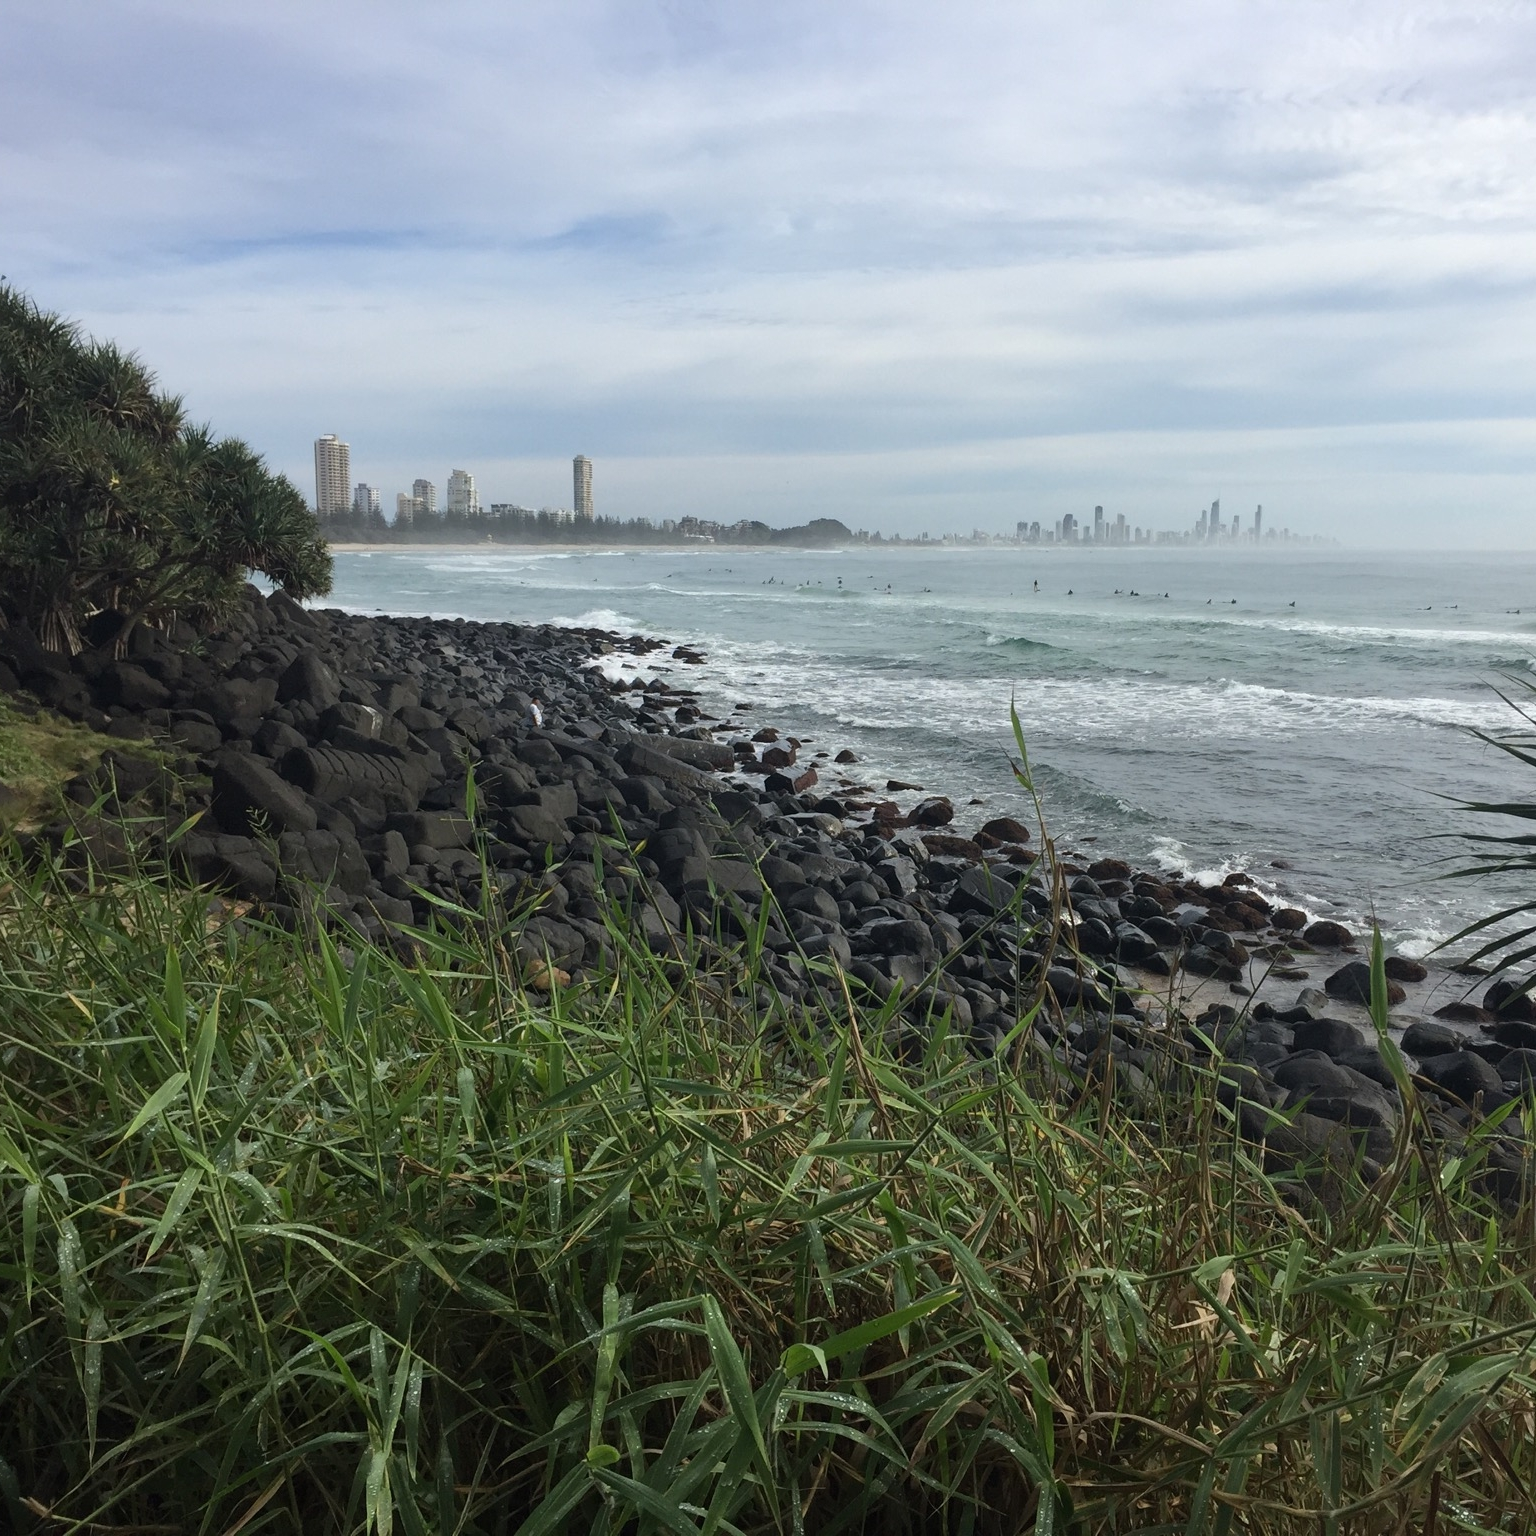 Burleigh Heads, Surfer's Paradise by Miles Dean for The Doubtful Traveller